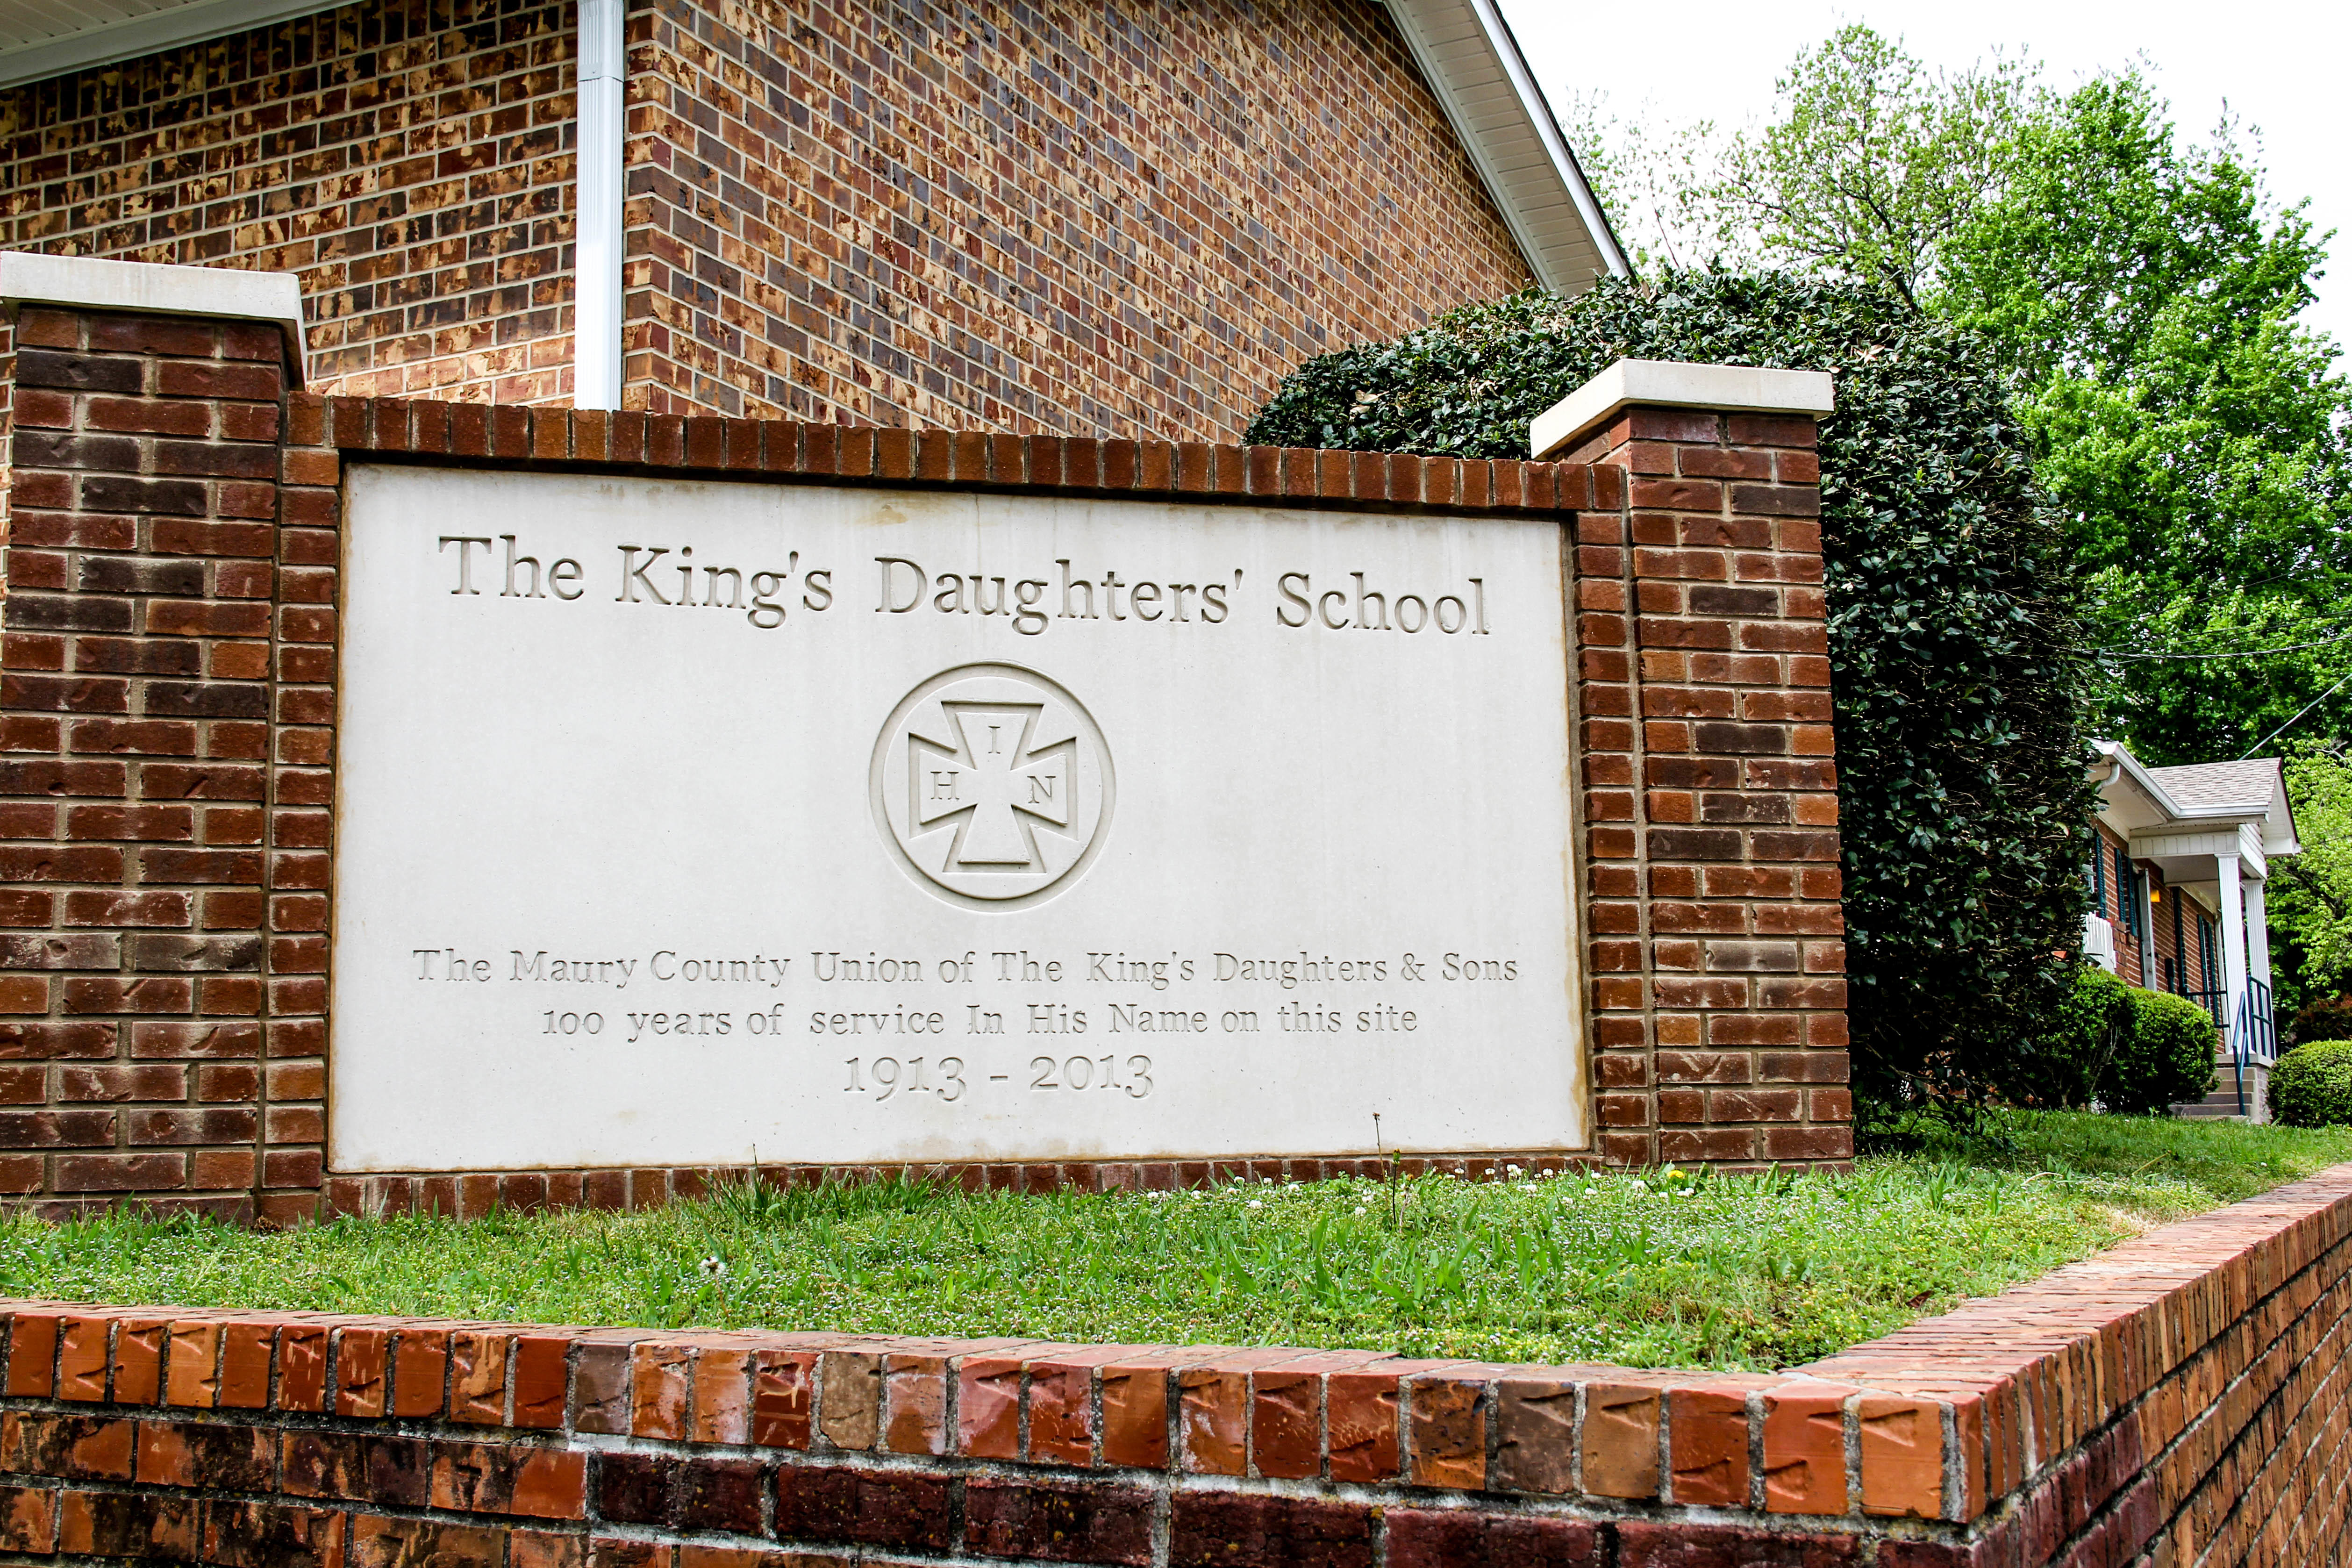 The King's Daughters' School image 0